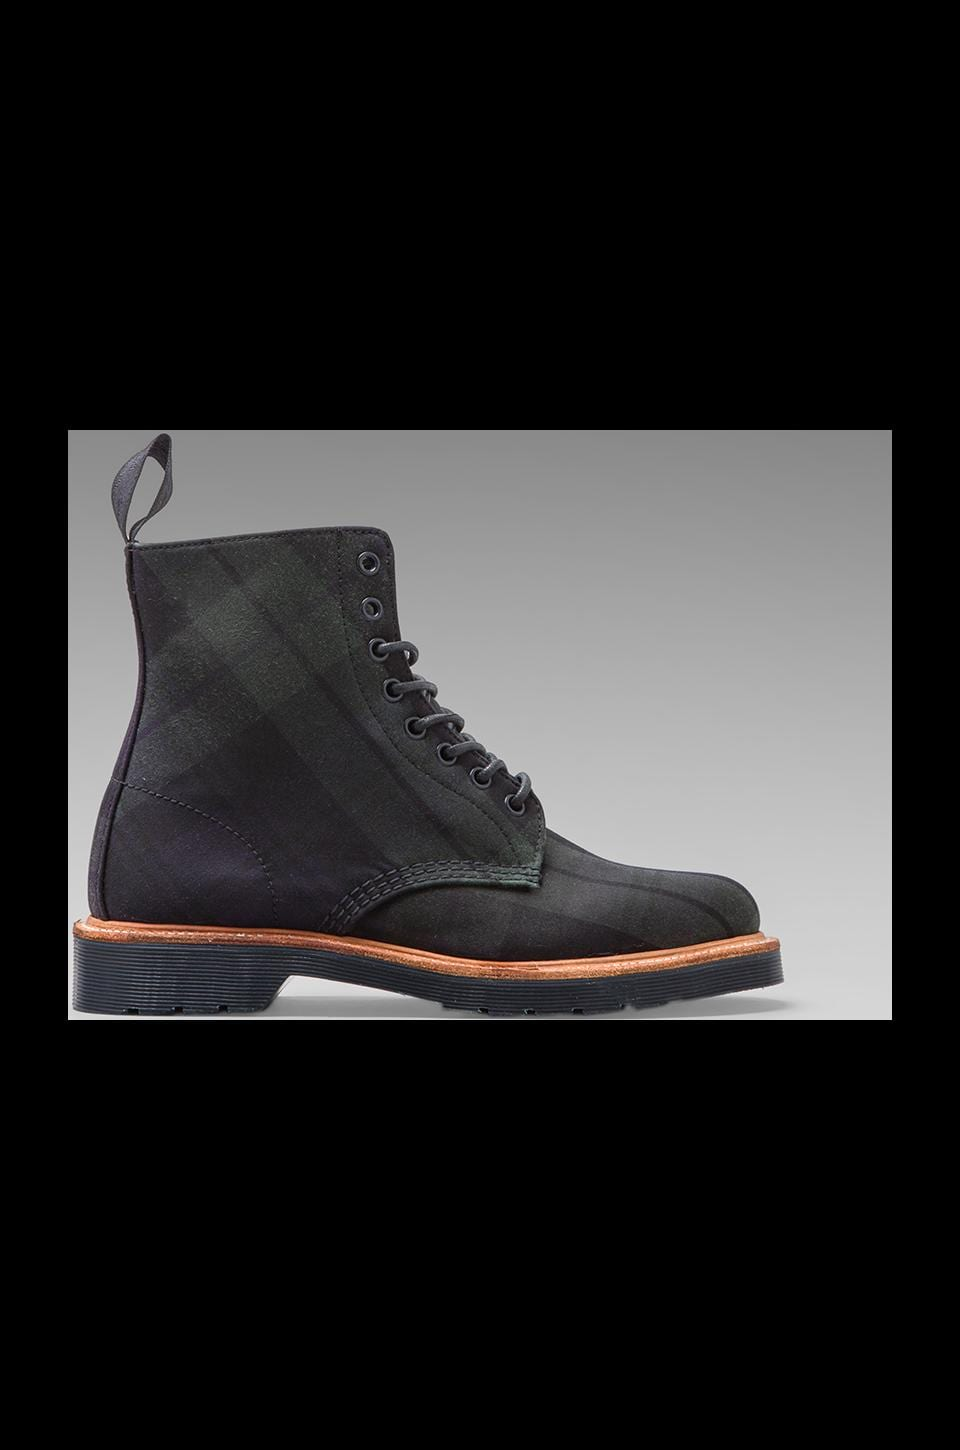 Dr. Martens Beckett 8-Eye Boot Millerrain Check in Navy + Green